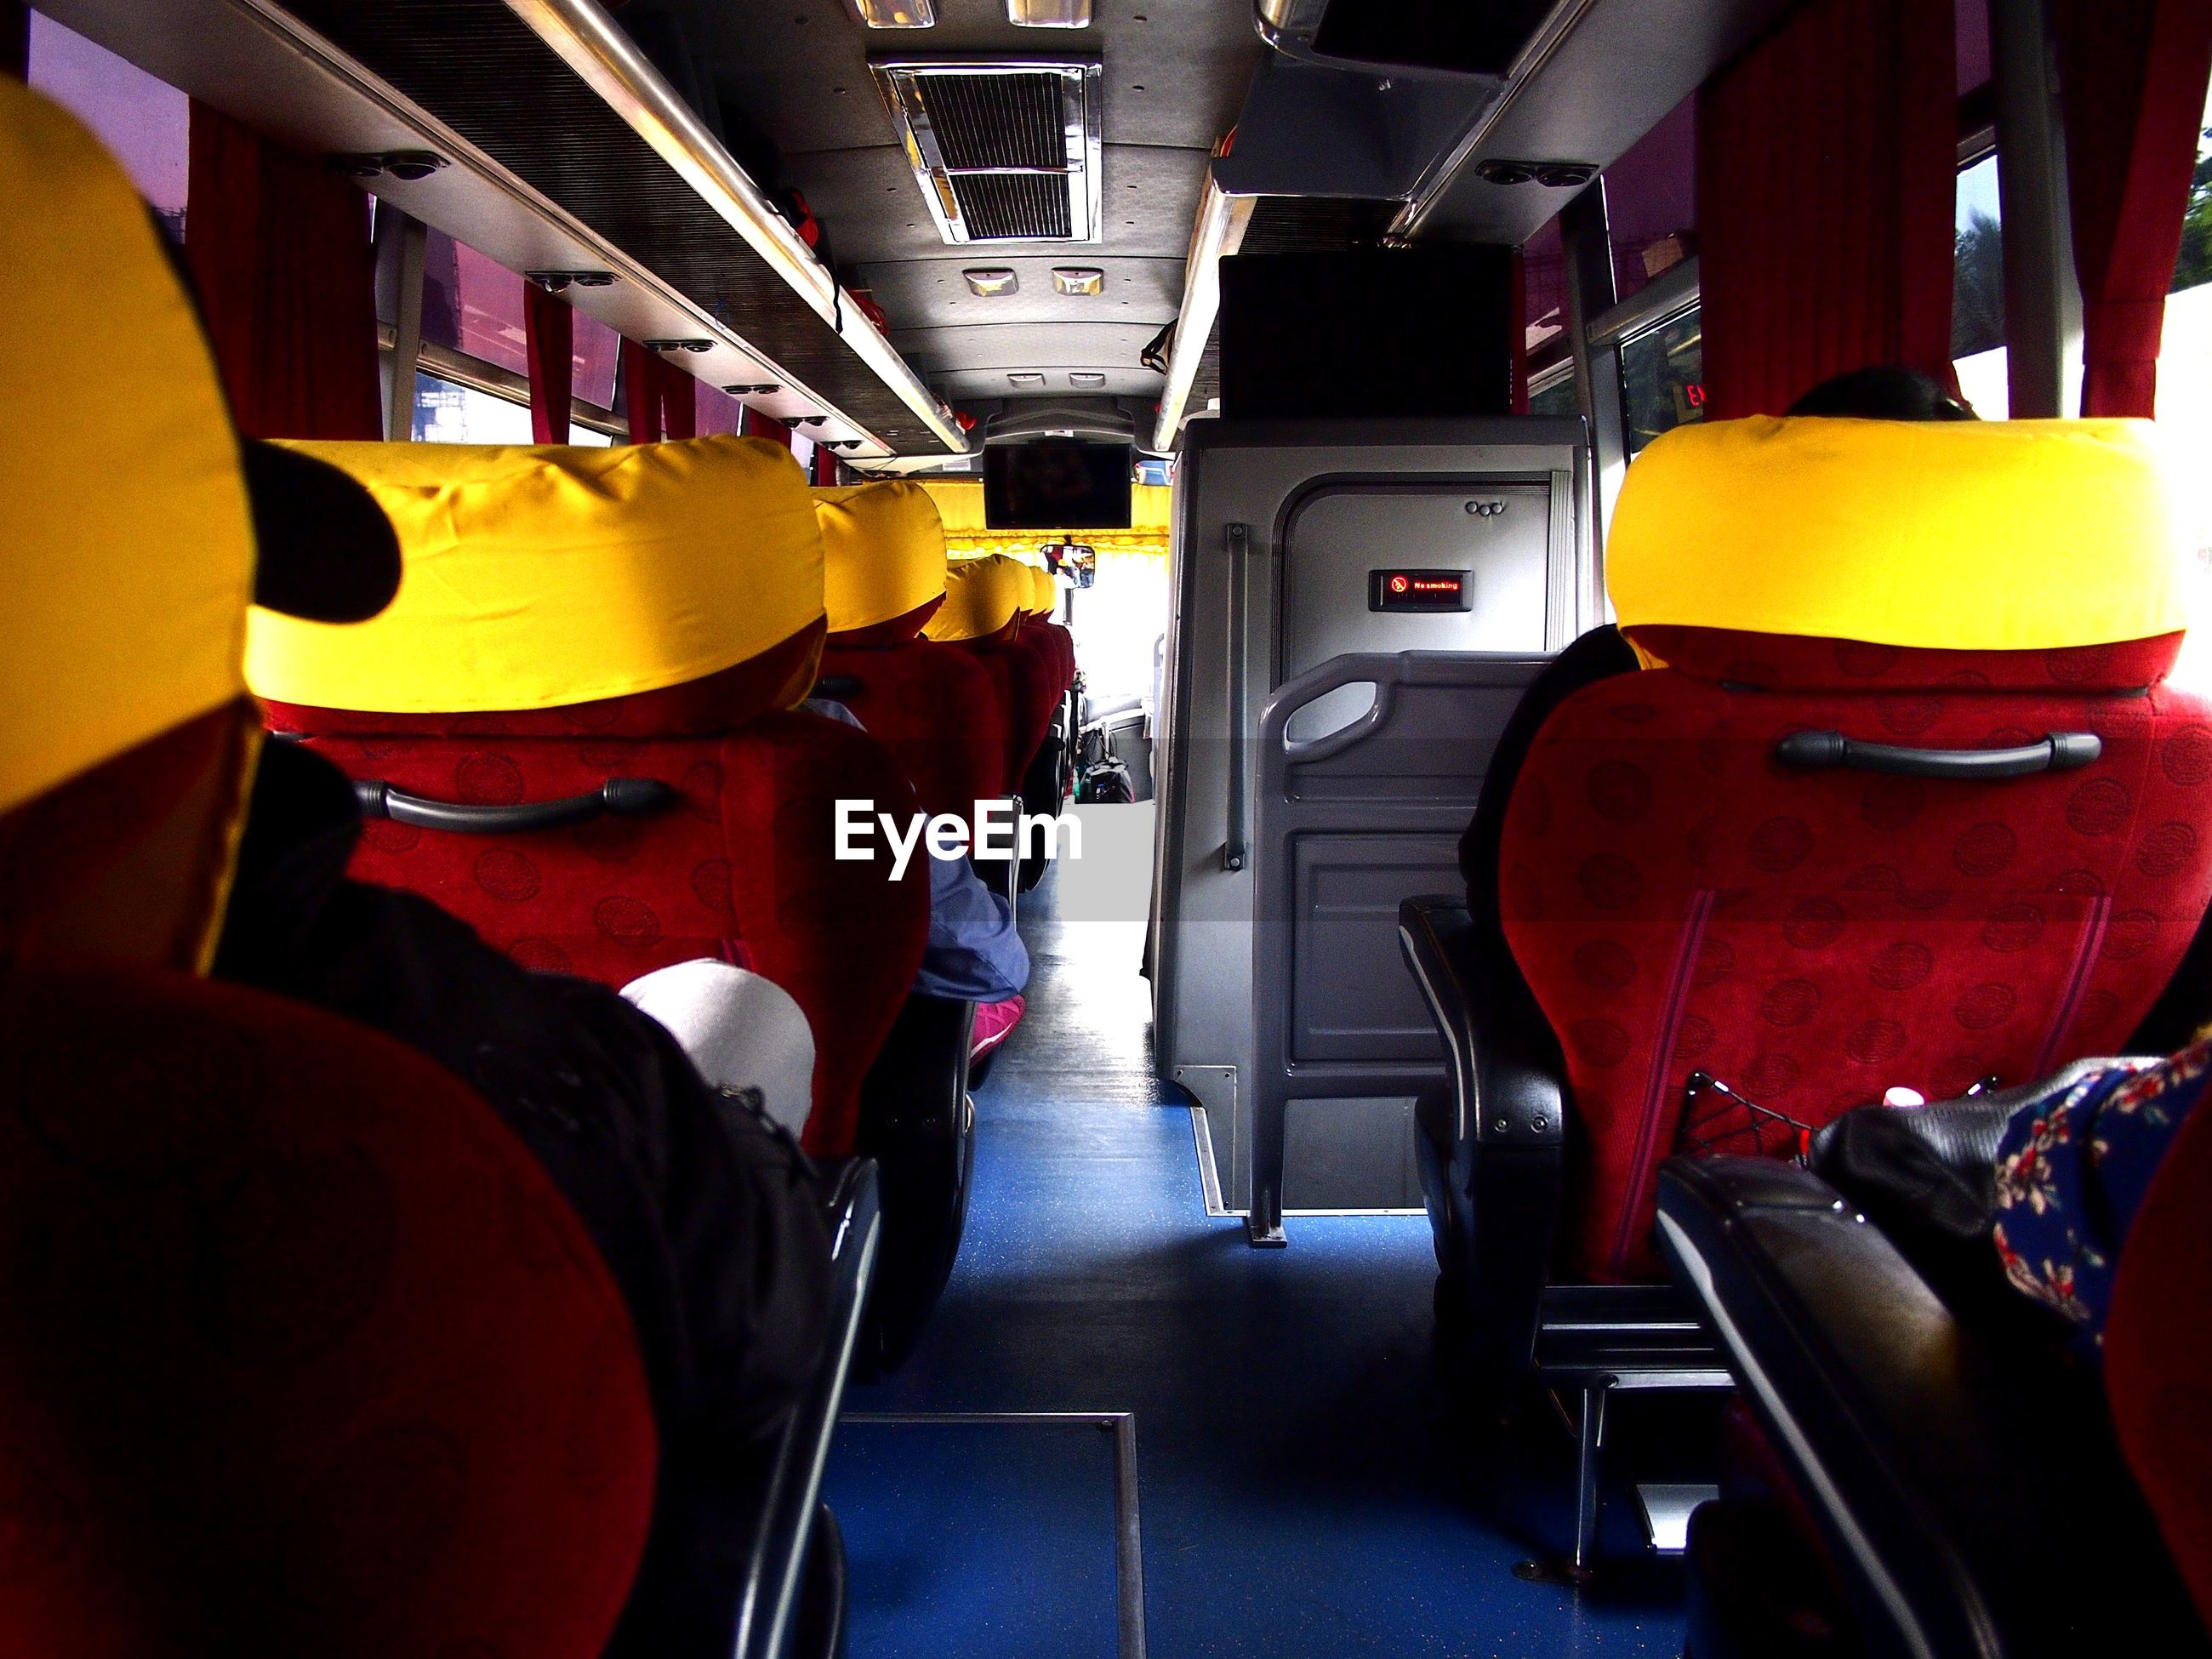 Rear view of people seating in bus